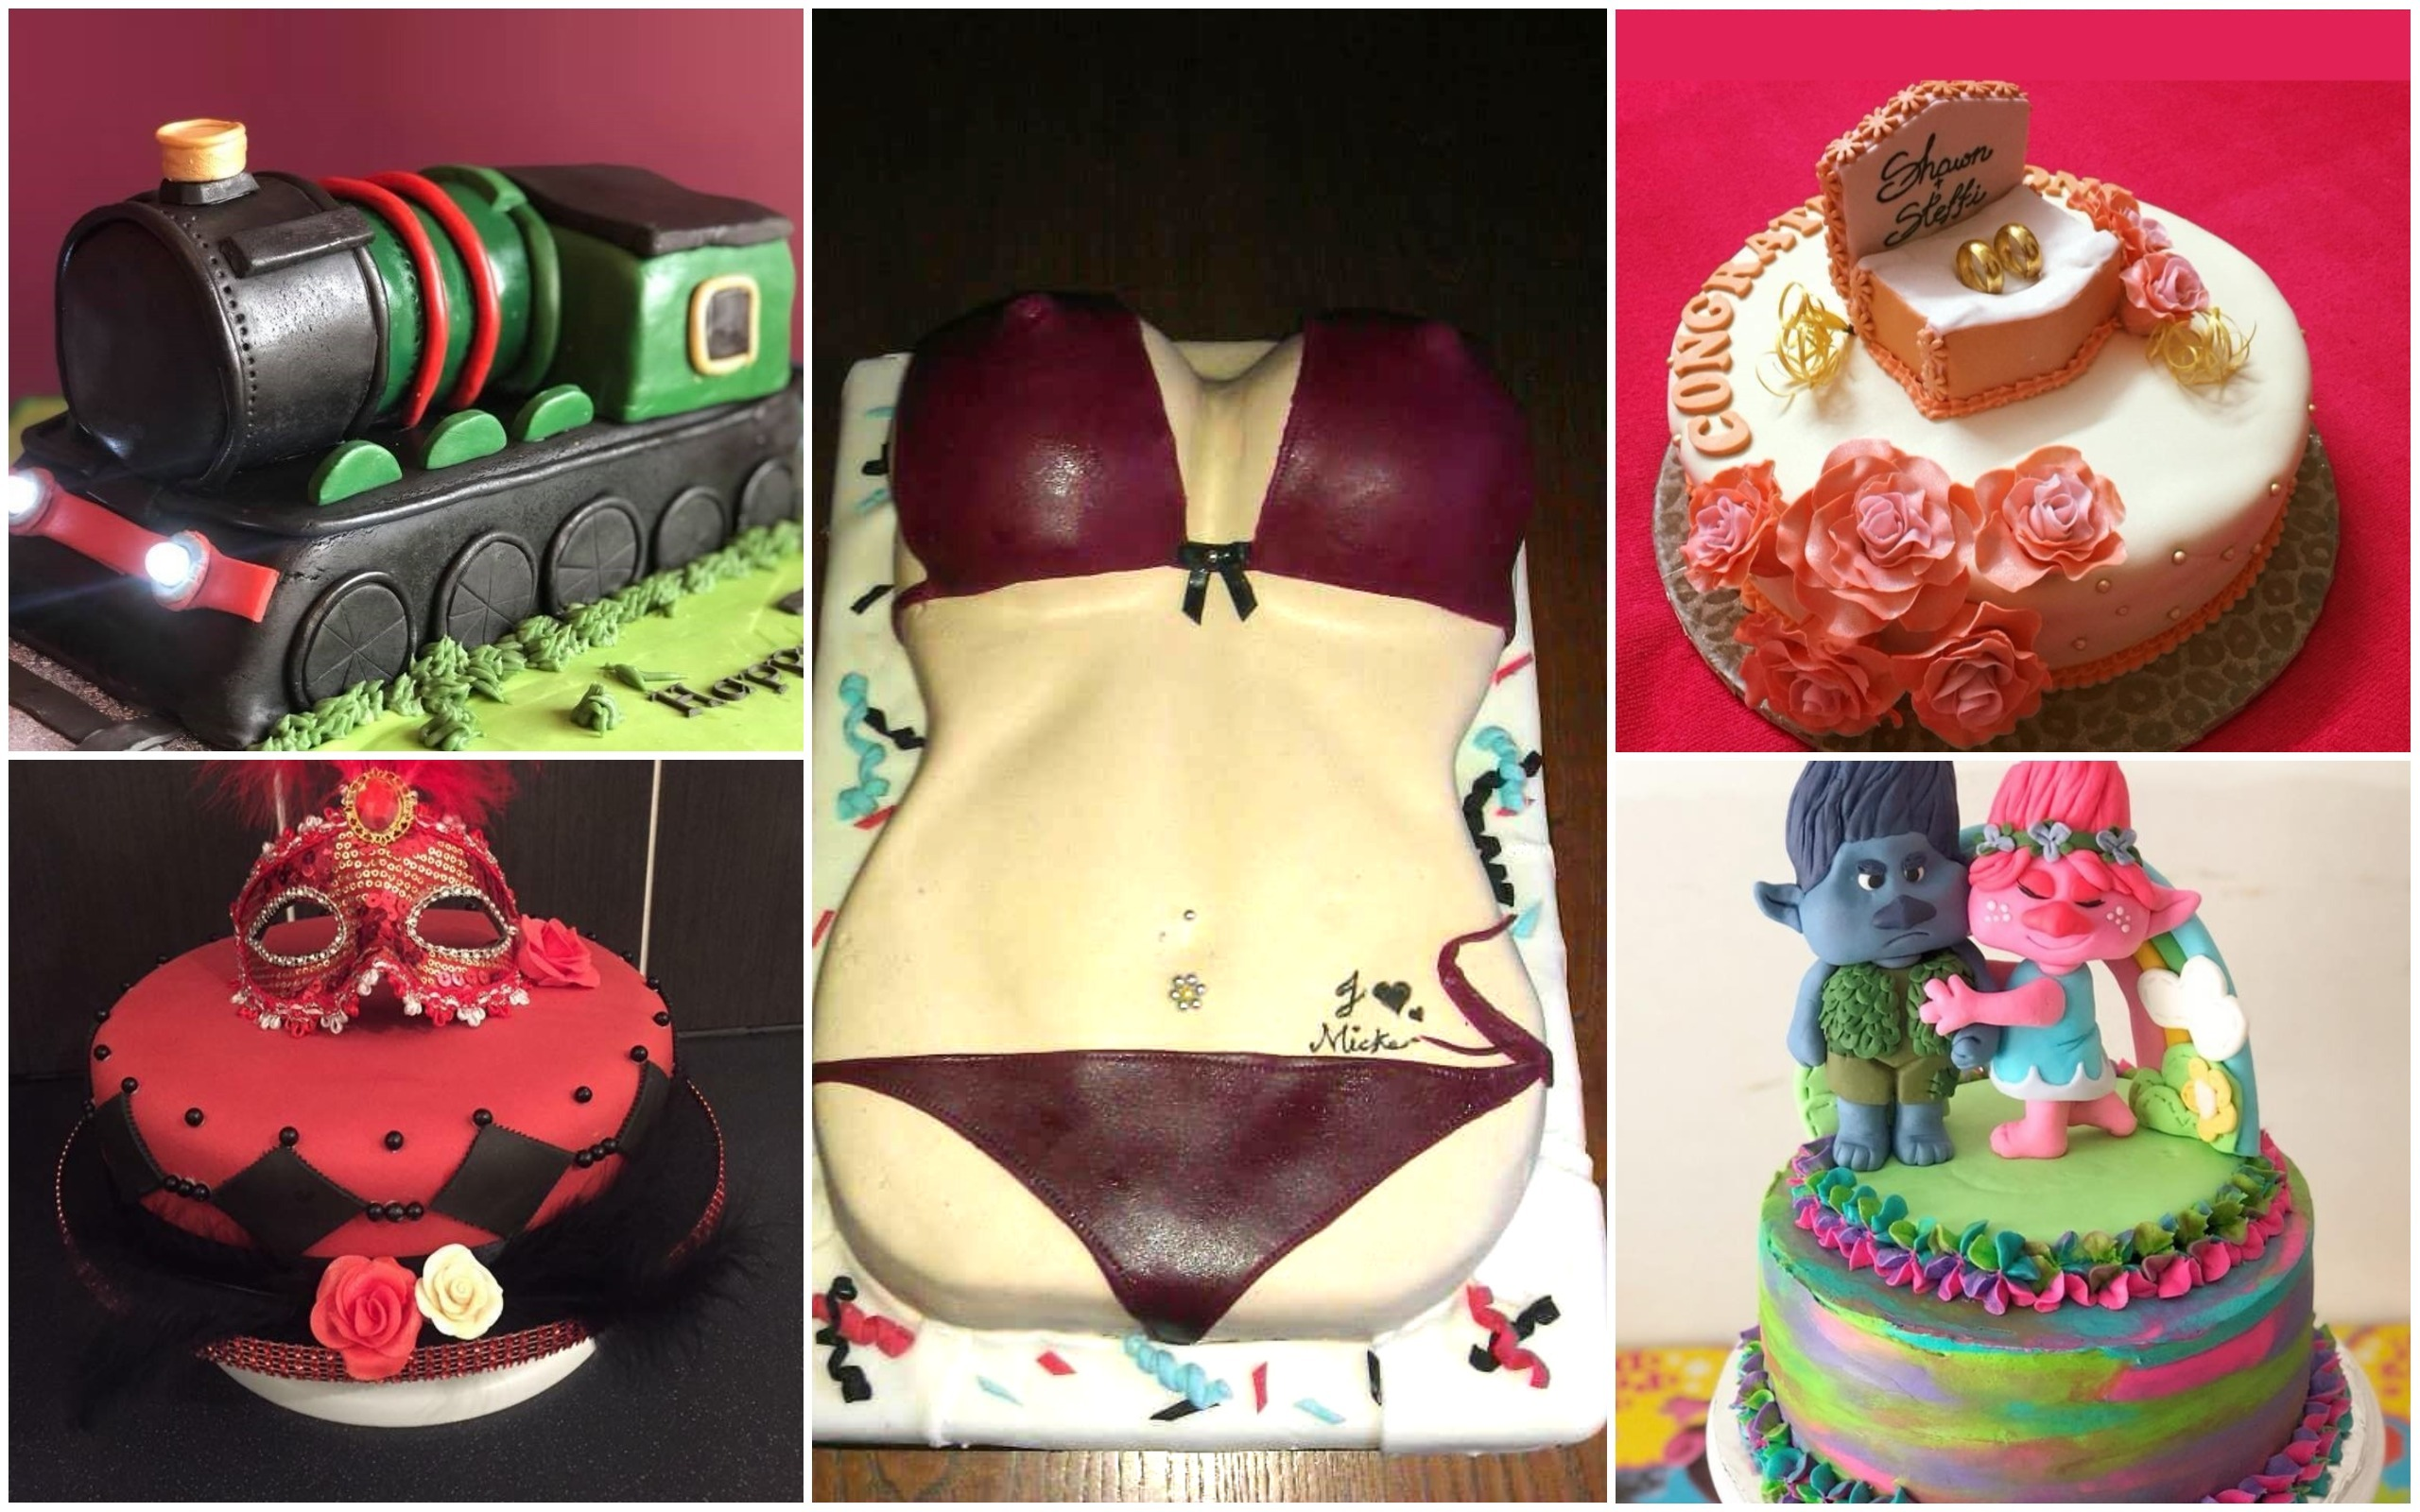 Competition: Artist of the World\'s Premier Cake